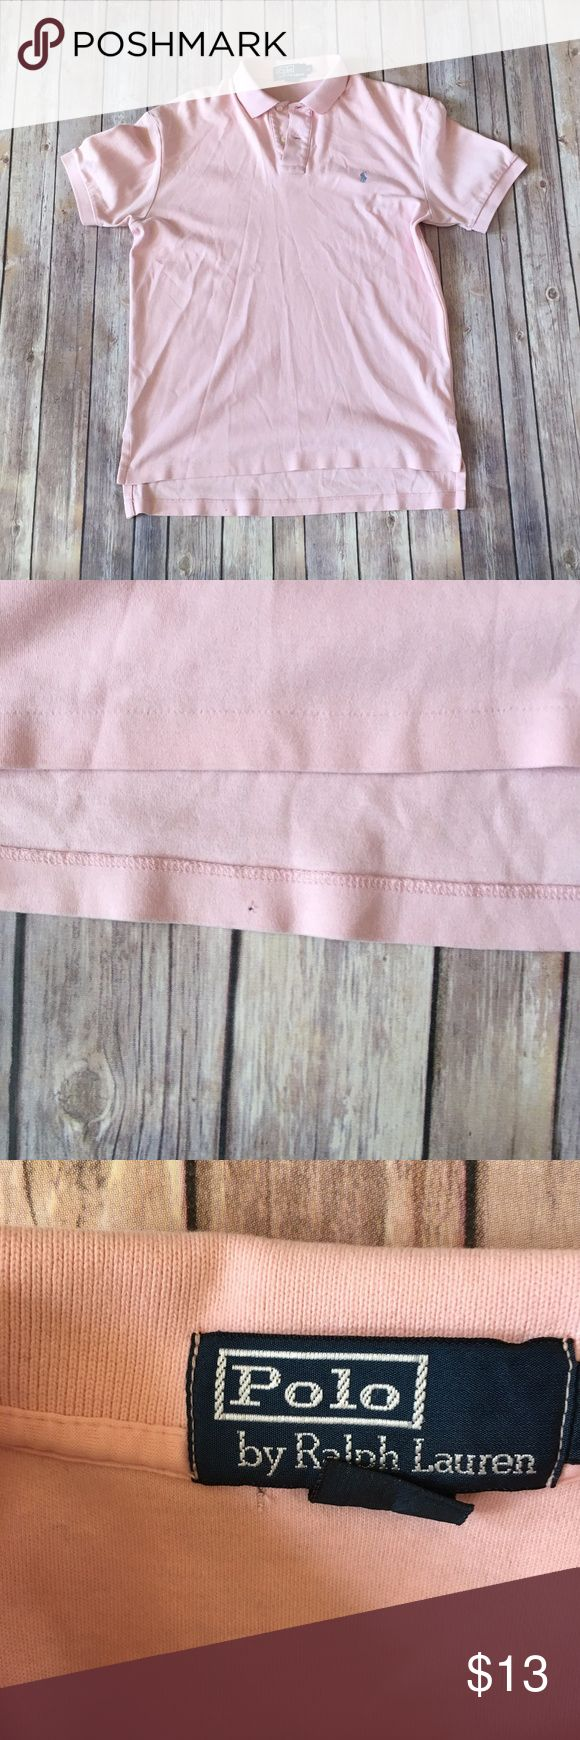 Polo Ralph Lauren Shirt Size Small Polo Ralph Lauren Pink Polo Shirt 100% Cotton Small hole near bottom hem, and near inside tag. Both Pictured No other flaws or discoloration Polo by Ralph Lauren Shirts Polos